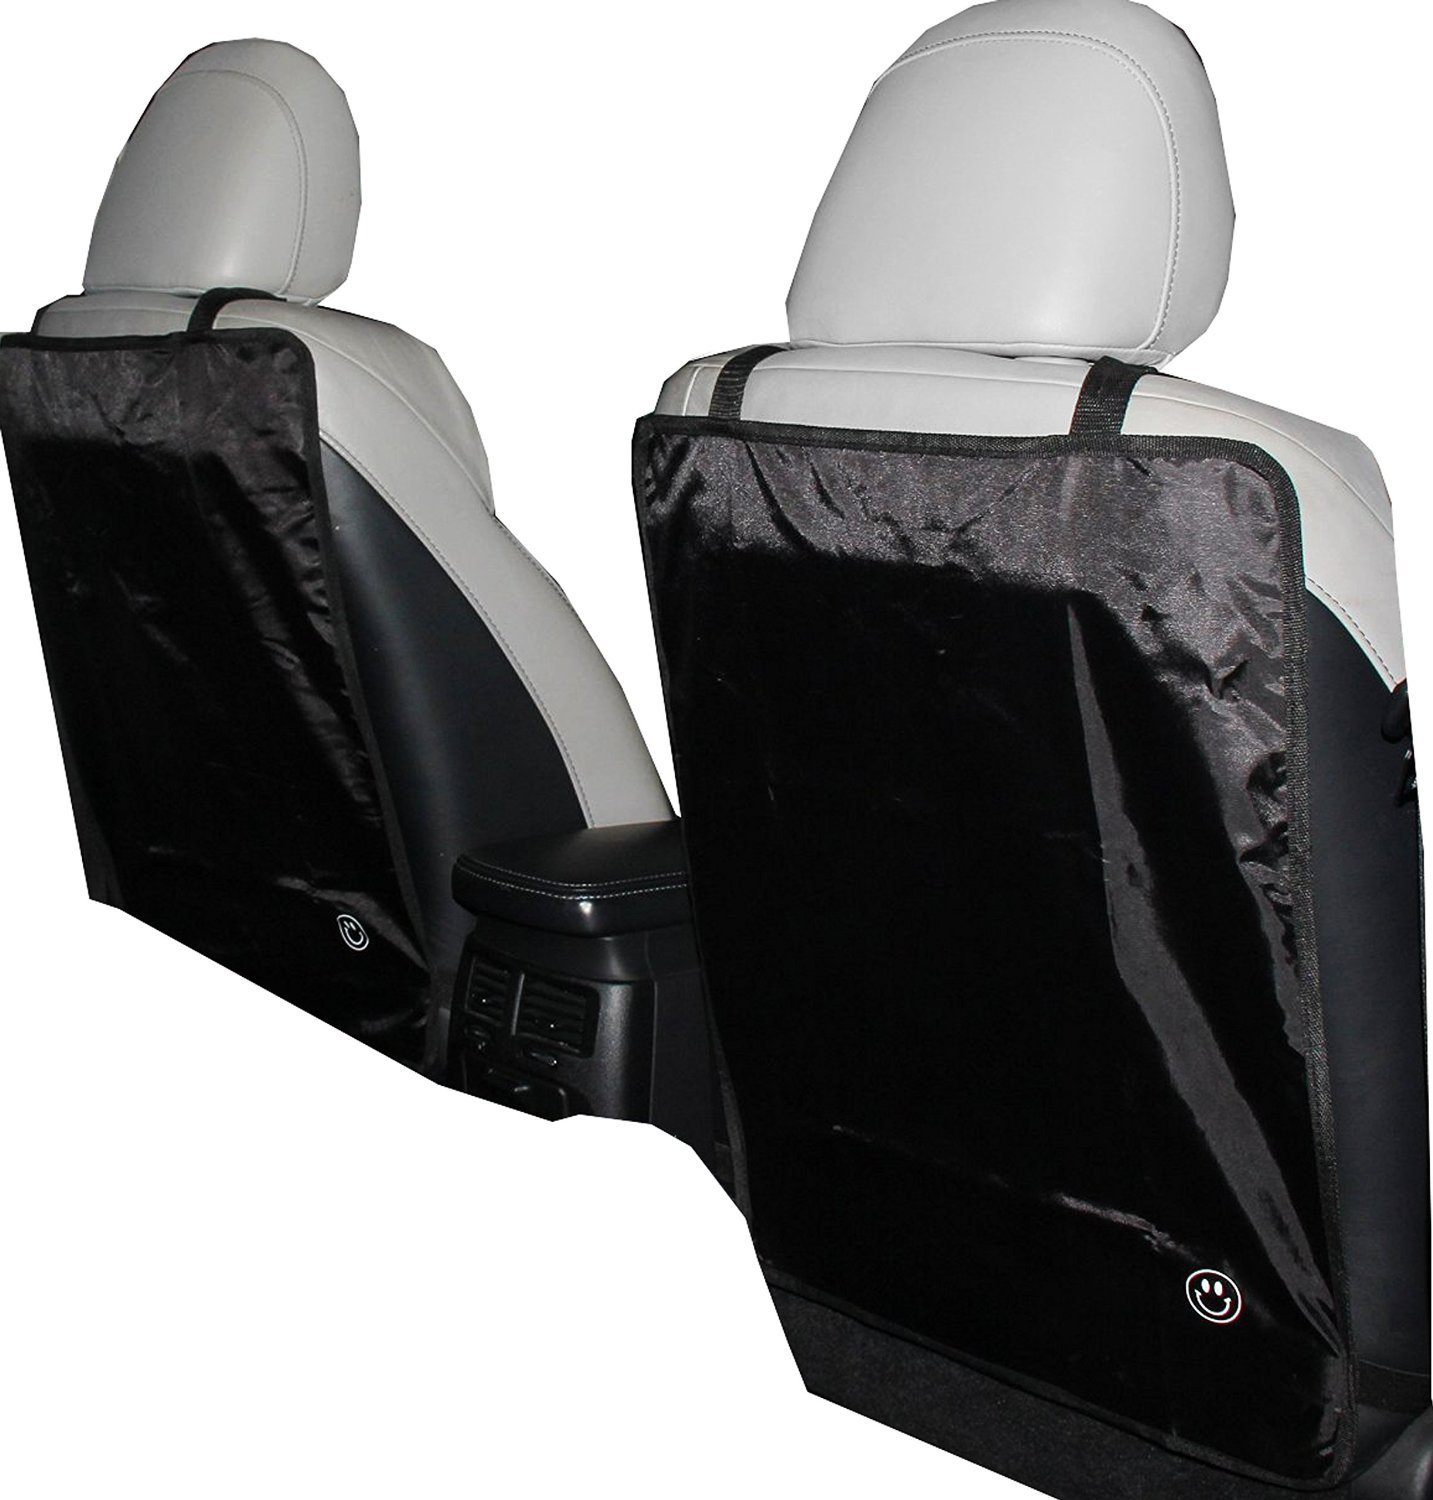 Premium Kick Mat - Luxury Car Seat Back Protectors 2 Pack